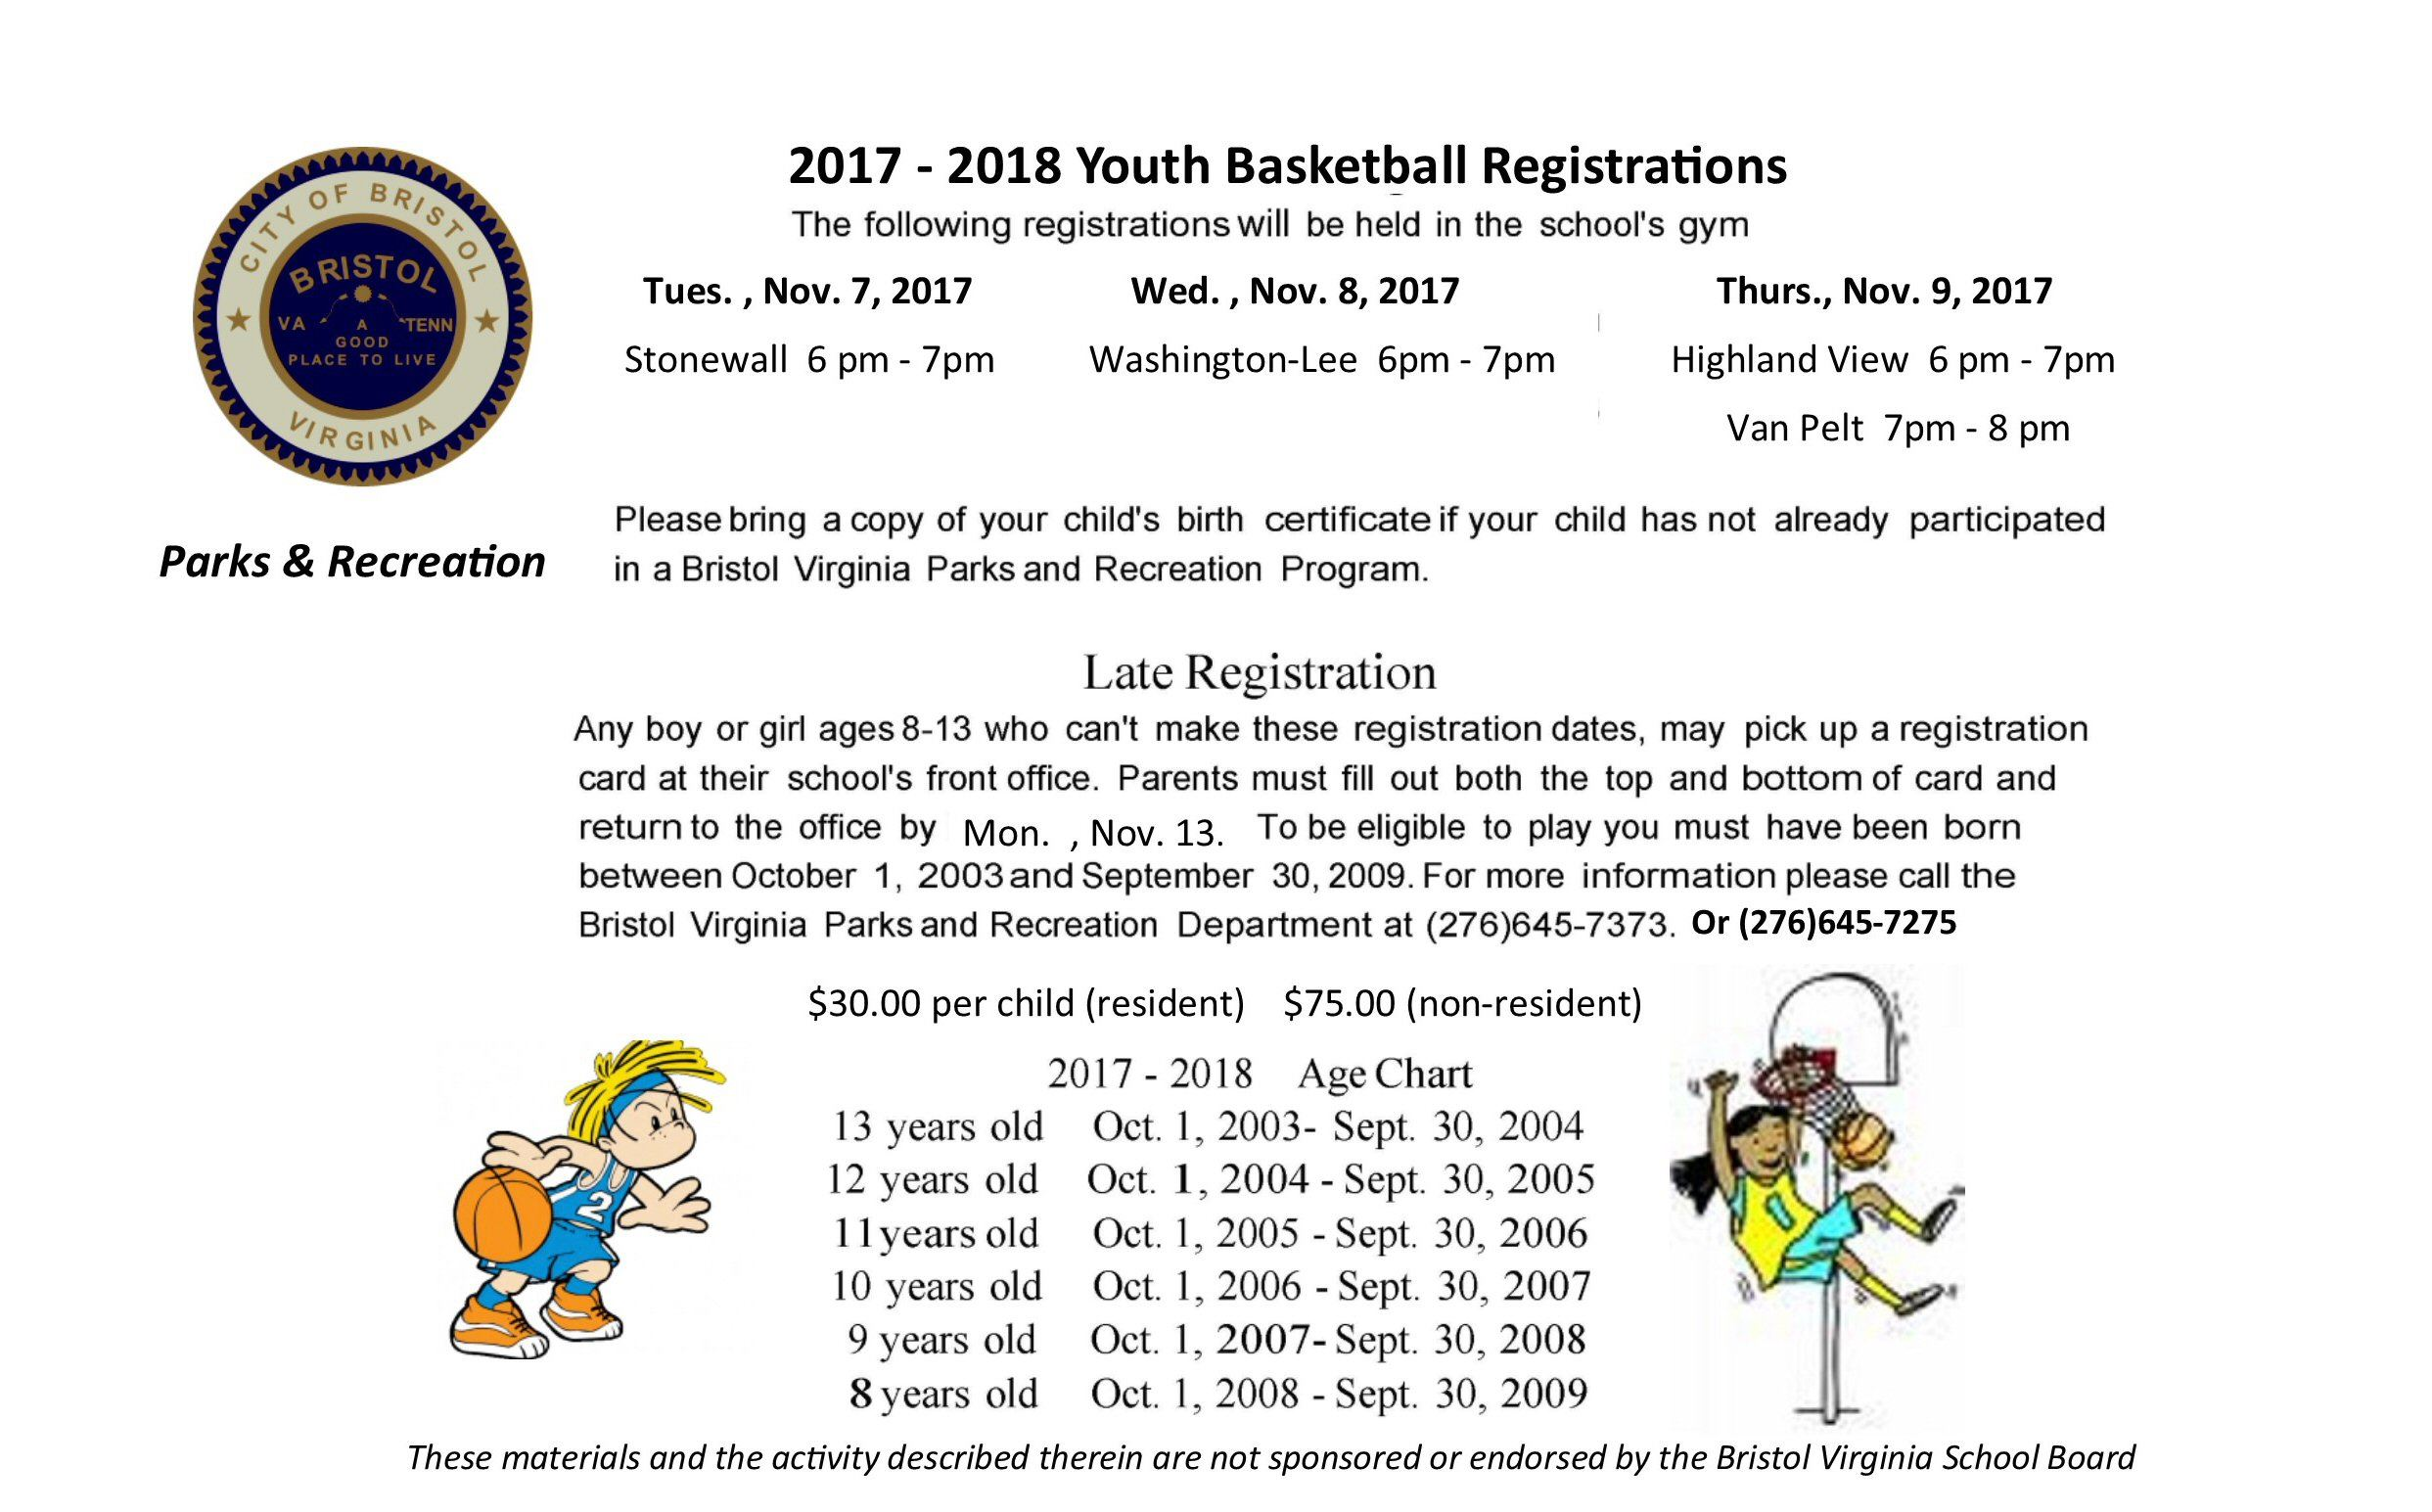 Basketball Registration 2017-2018